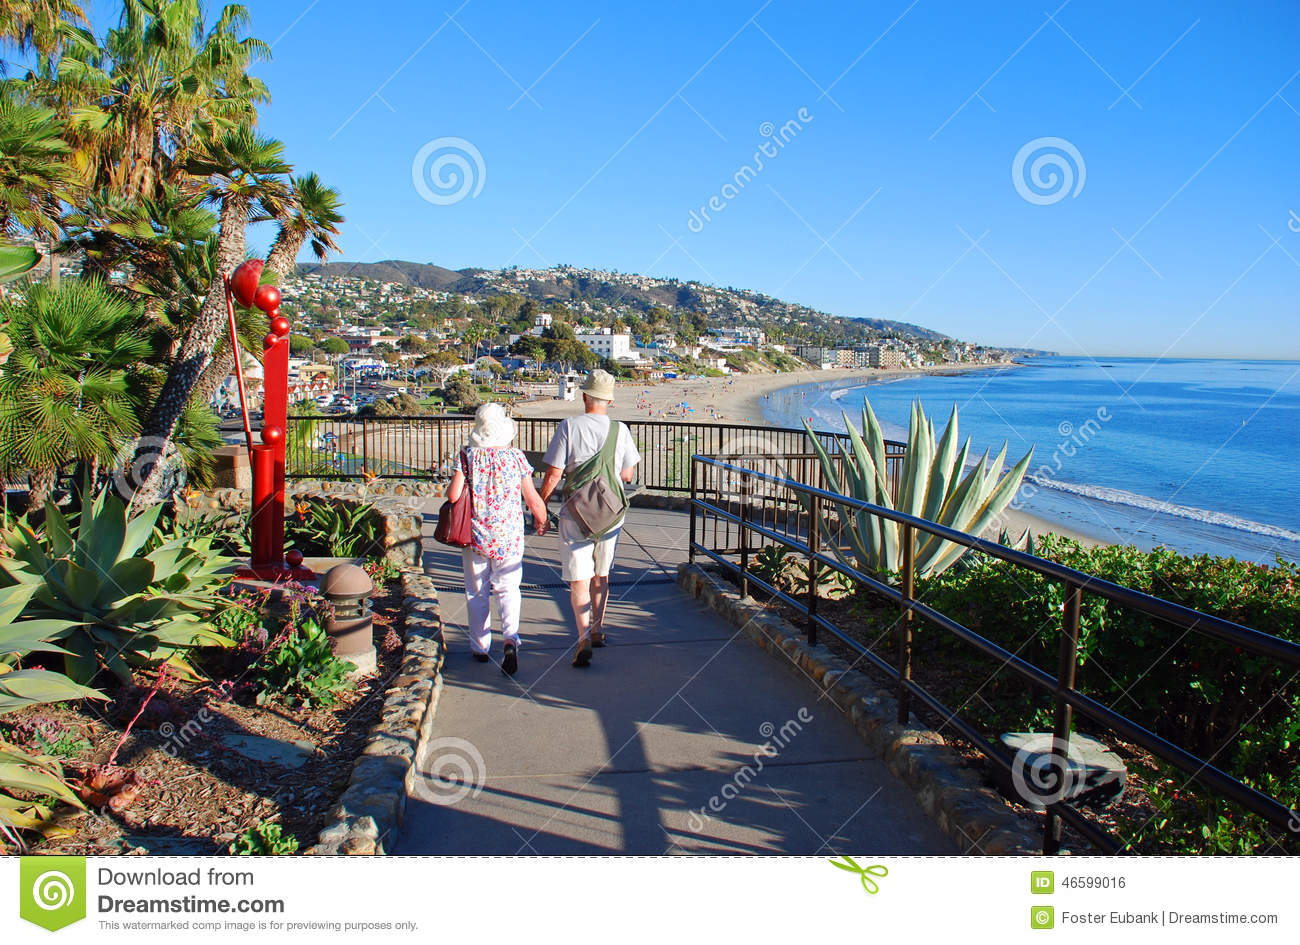 laguna park senior personals Reviews, ratings, photos and pricing for laguna park in elk grove, ca find and compare nearby care homes at caringcom.